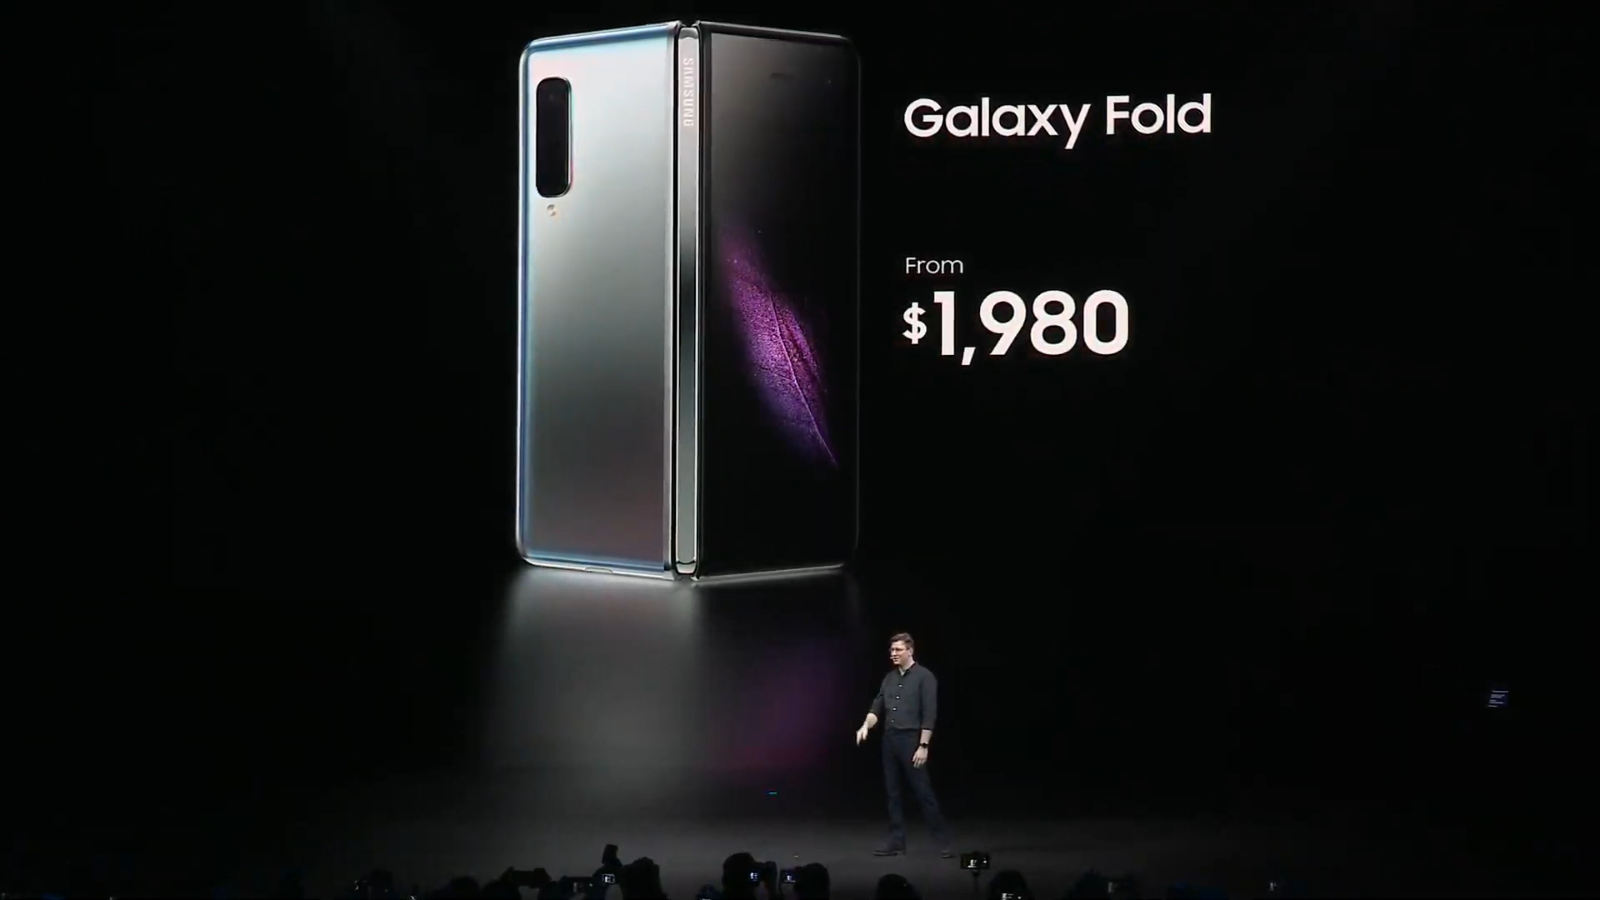 Samsung's Galaxy Fold will have a huge screen and price tag.